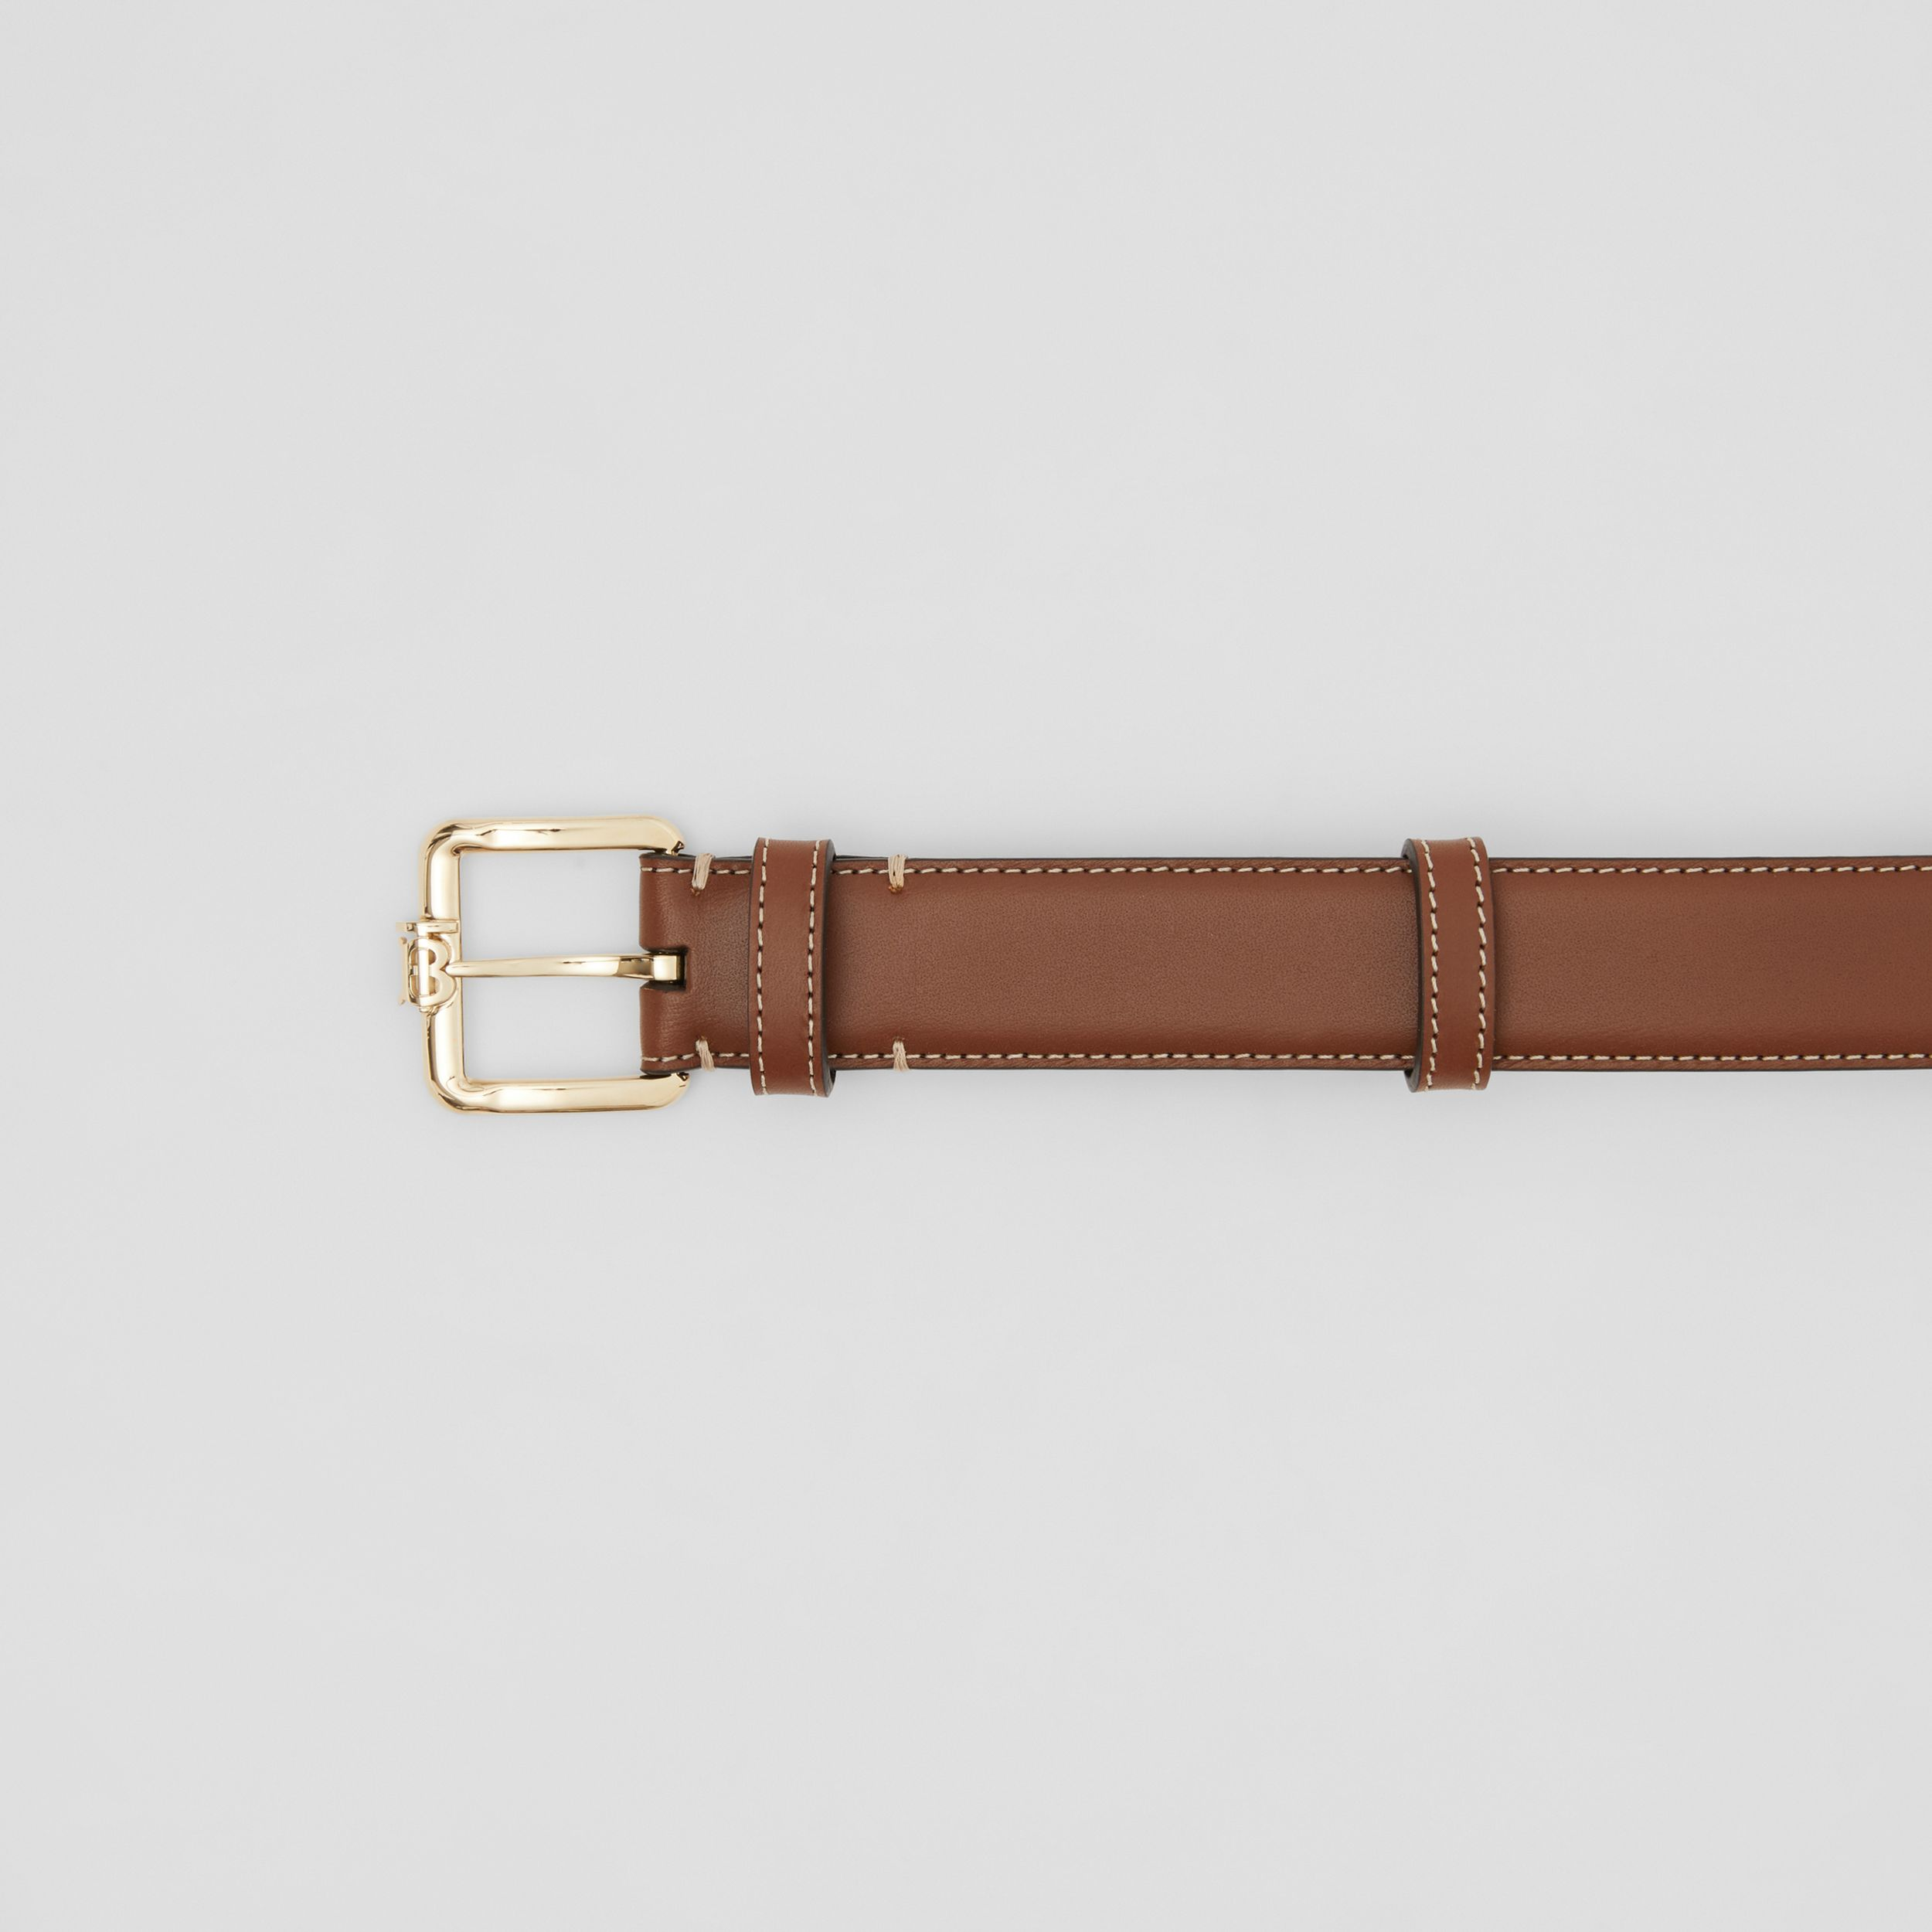 Monogram Motif Topstitched Leather Belt in Tan/light Gold - Women | Burberry United Kingdom - 2